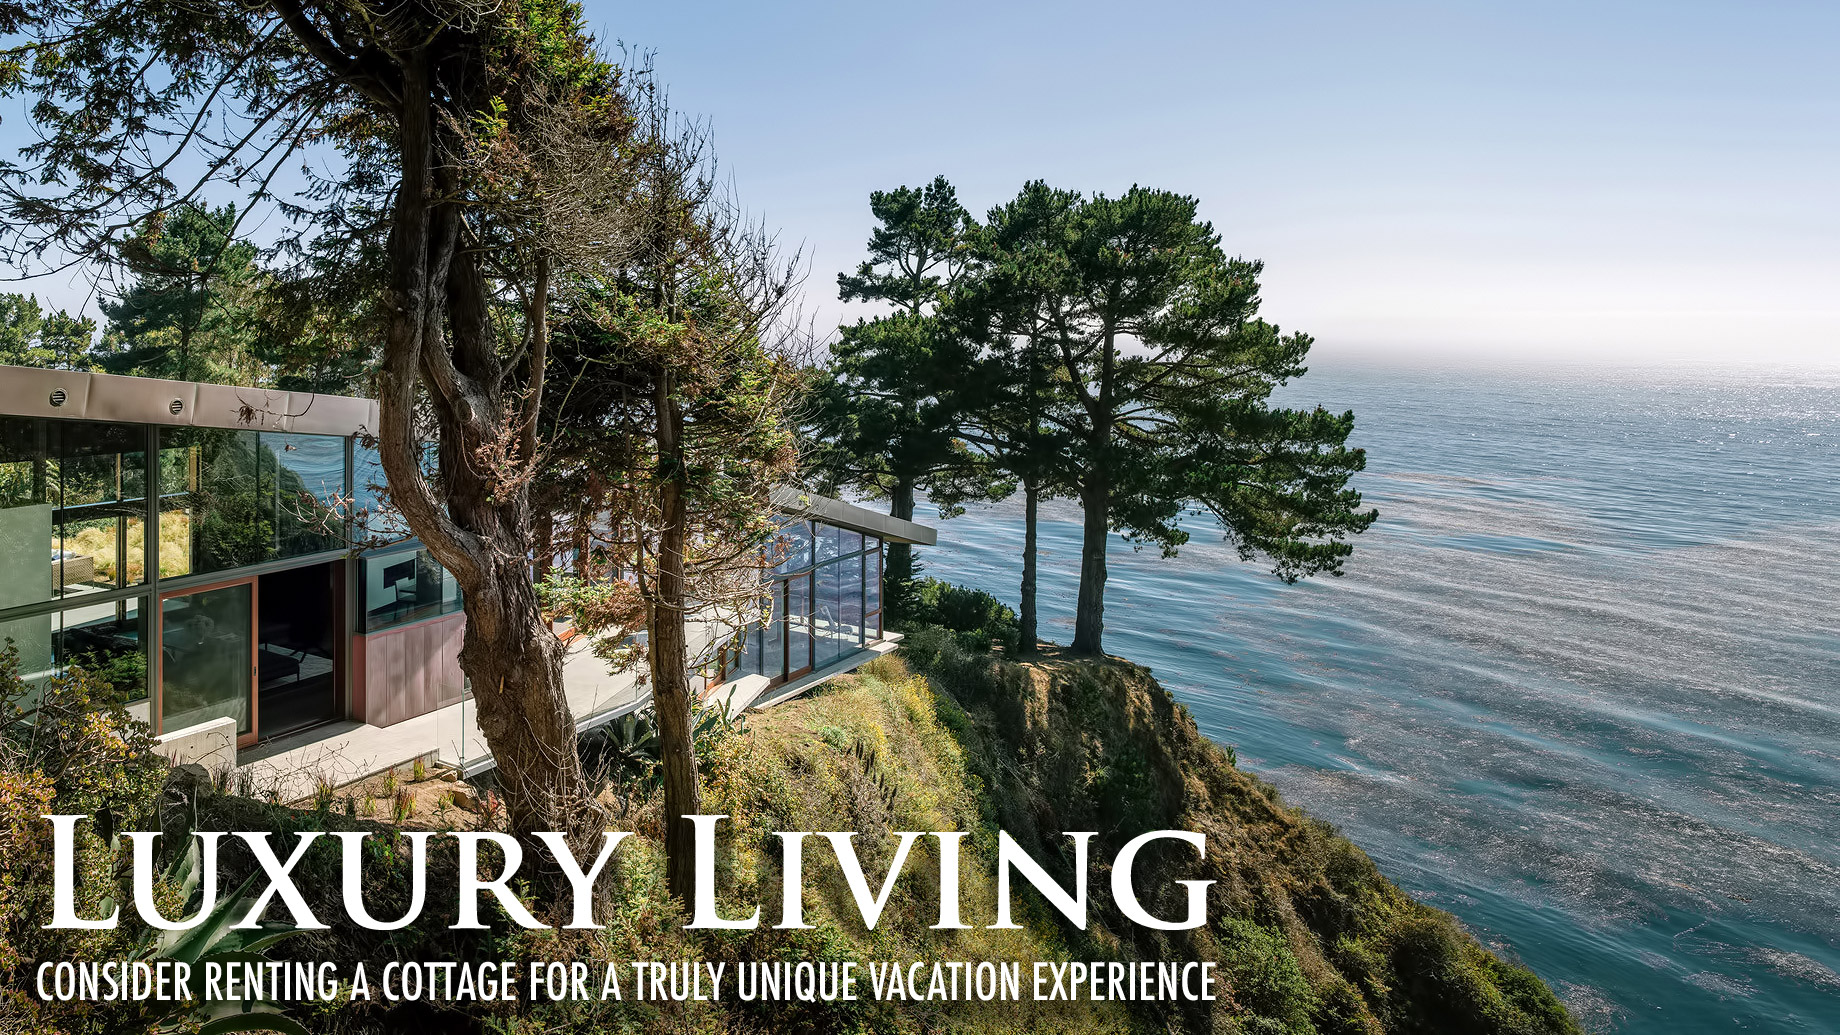 Luxury Living - Consider Renting a Cottage For a Truly Unique Vacation Experience